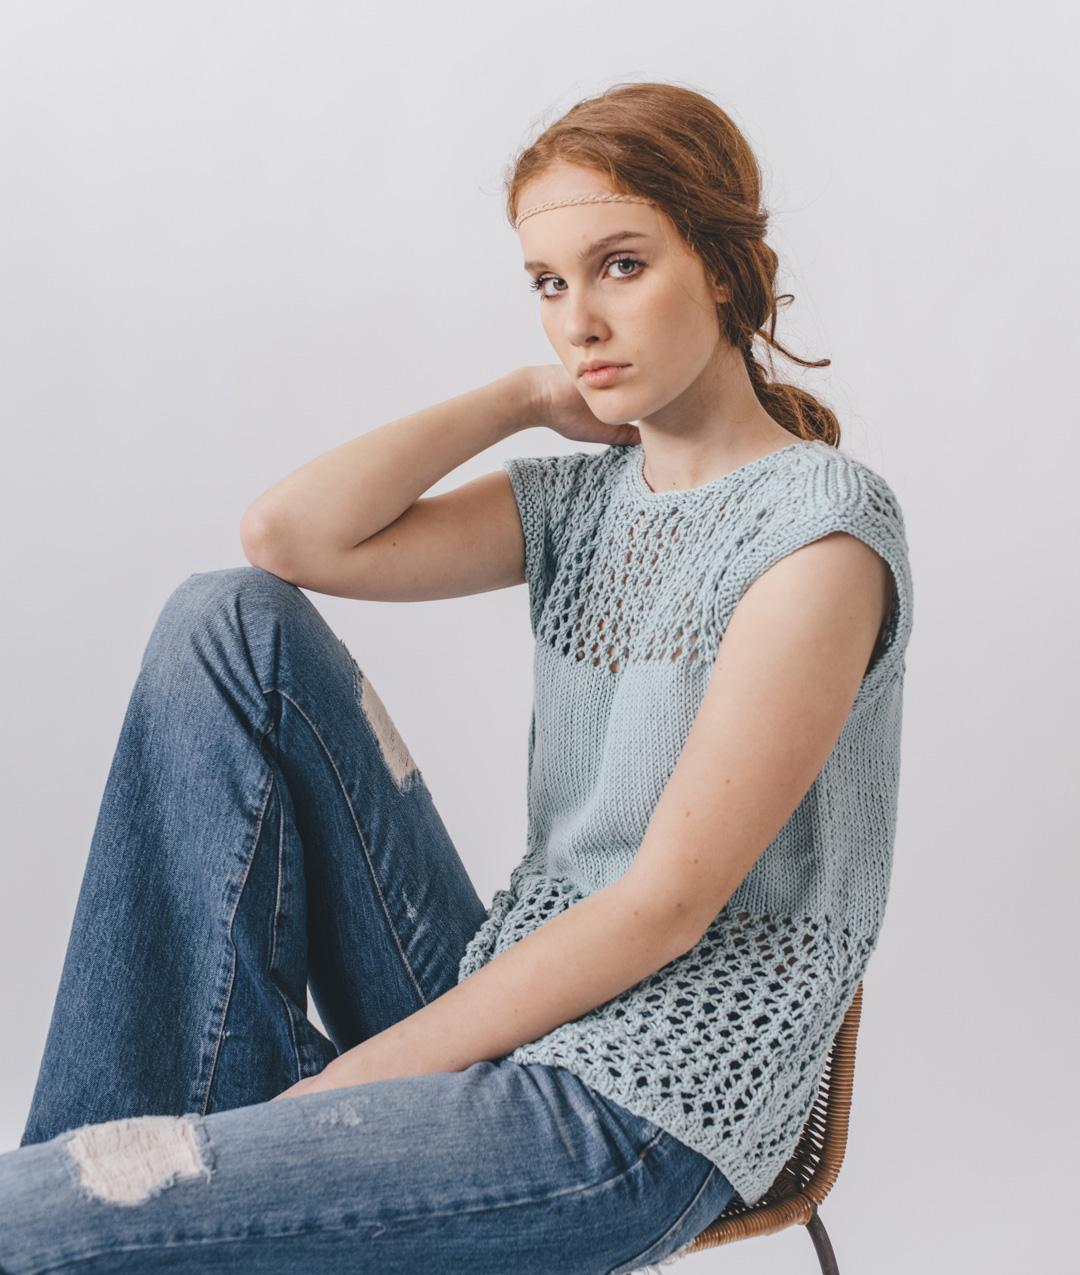 Sweaters and Tops - Cotton - Cristal Tee - 1